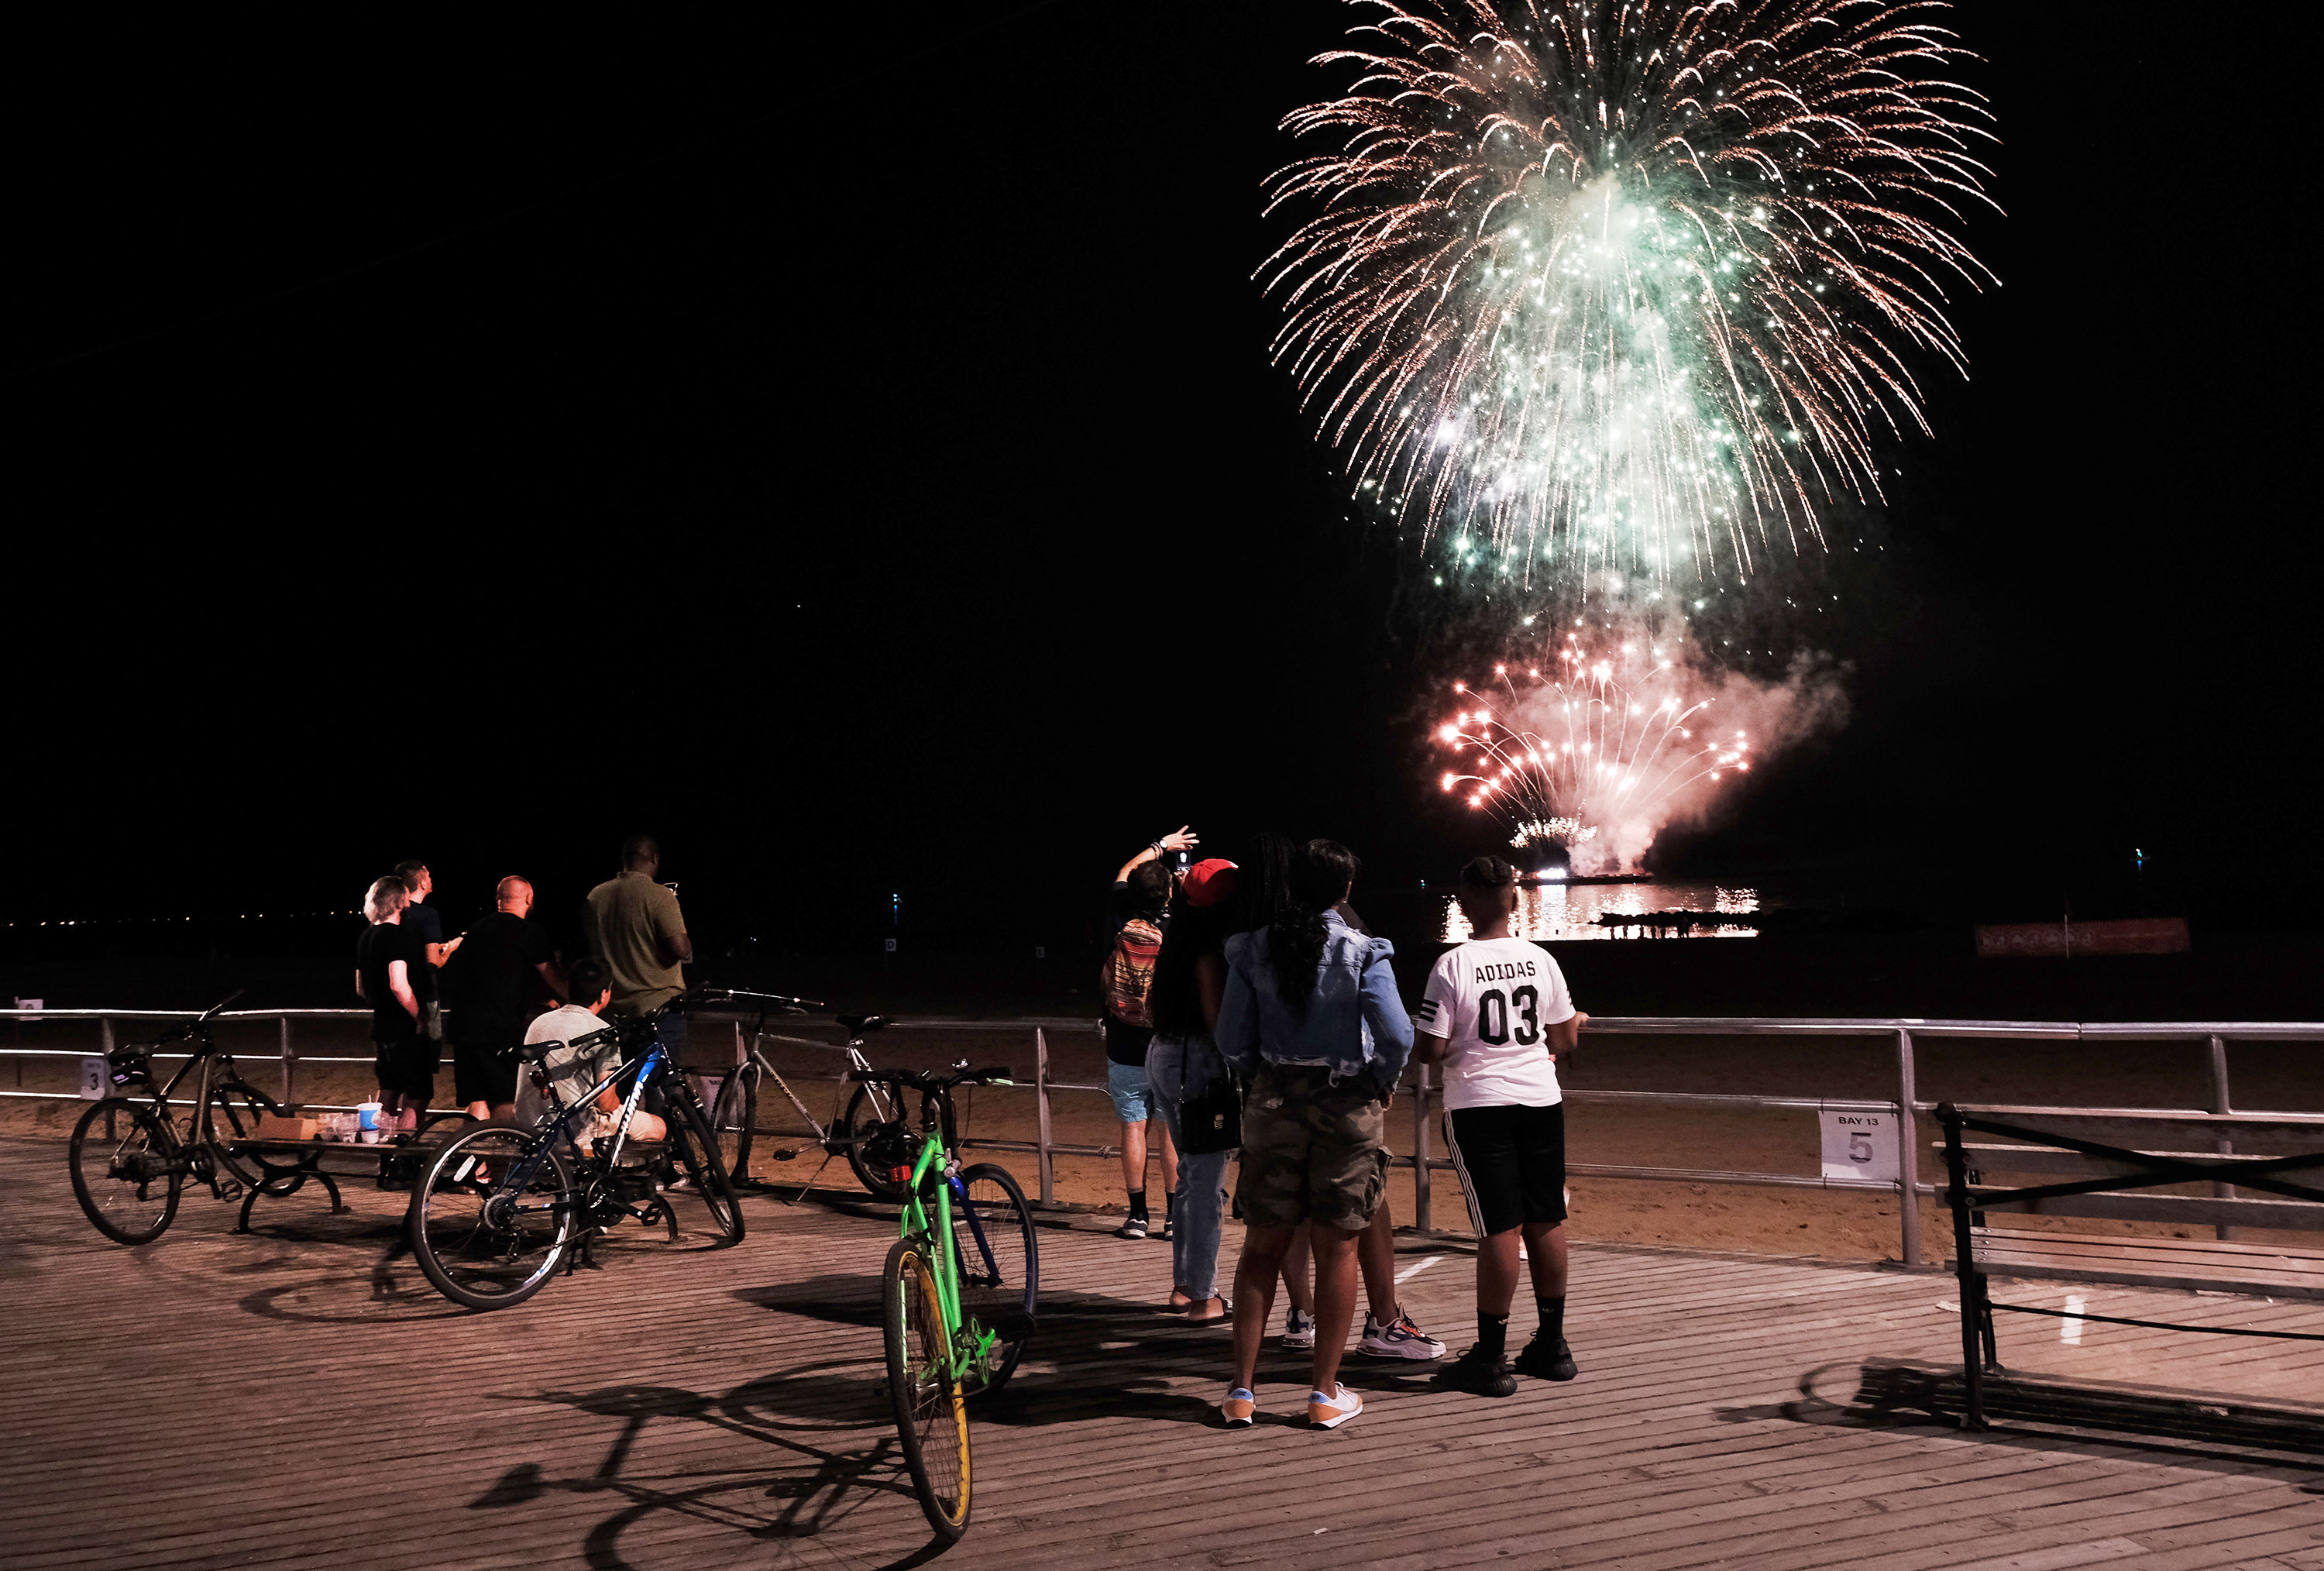 A small group of people watch a fireworks show at Coney Island on June 29 in New York.